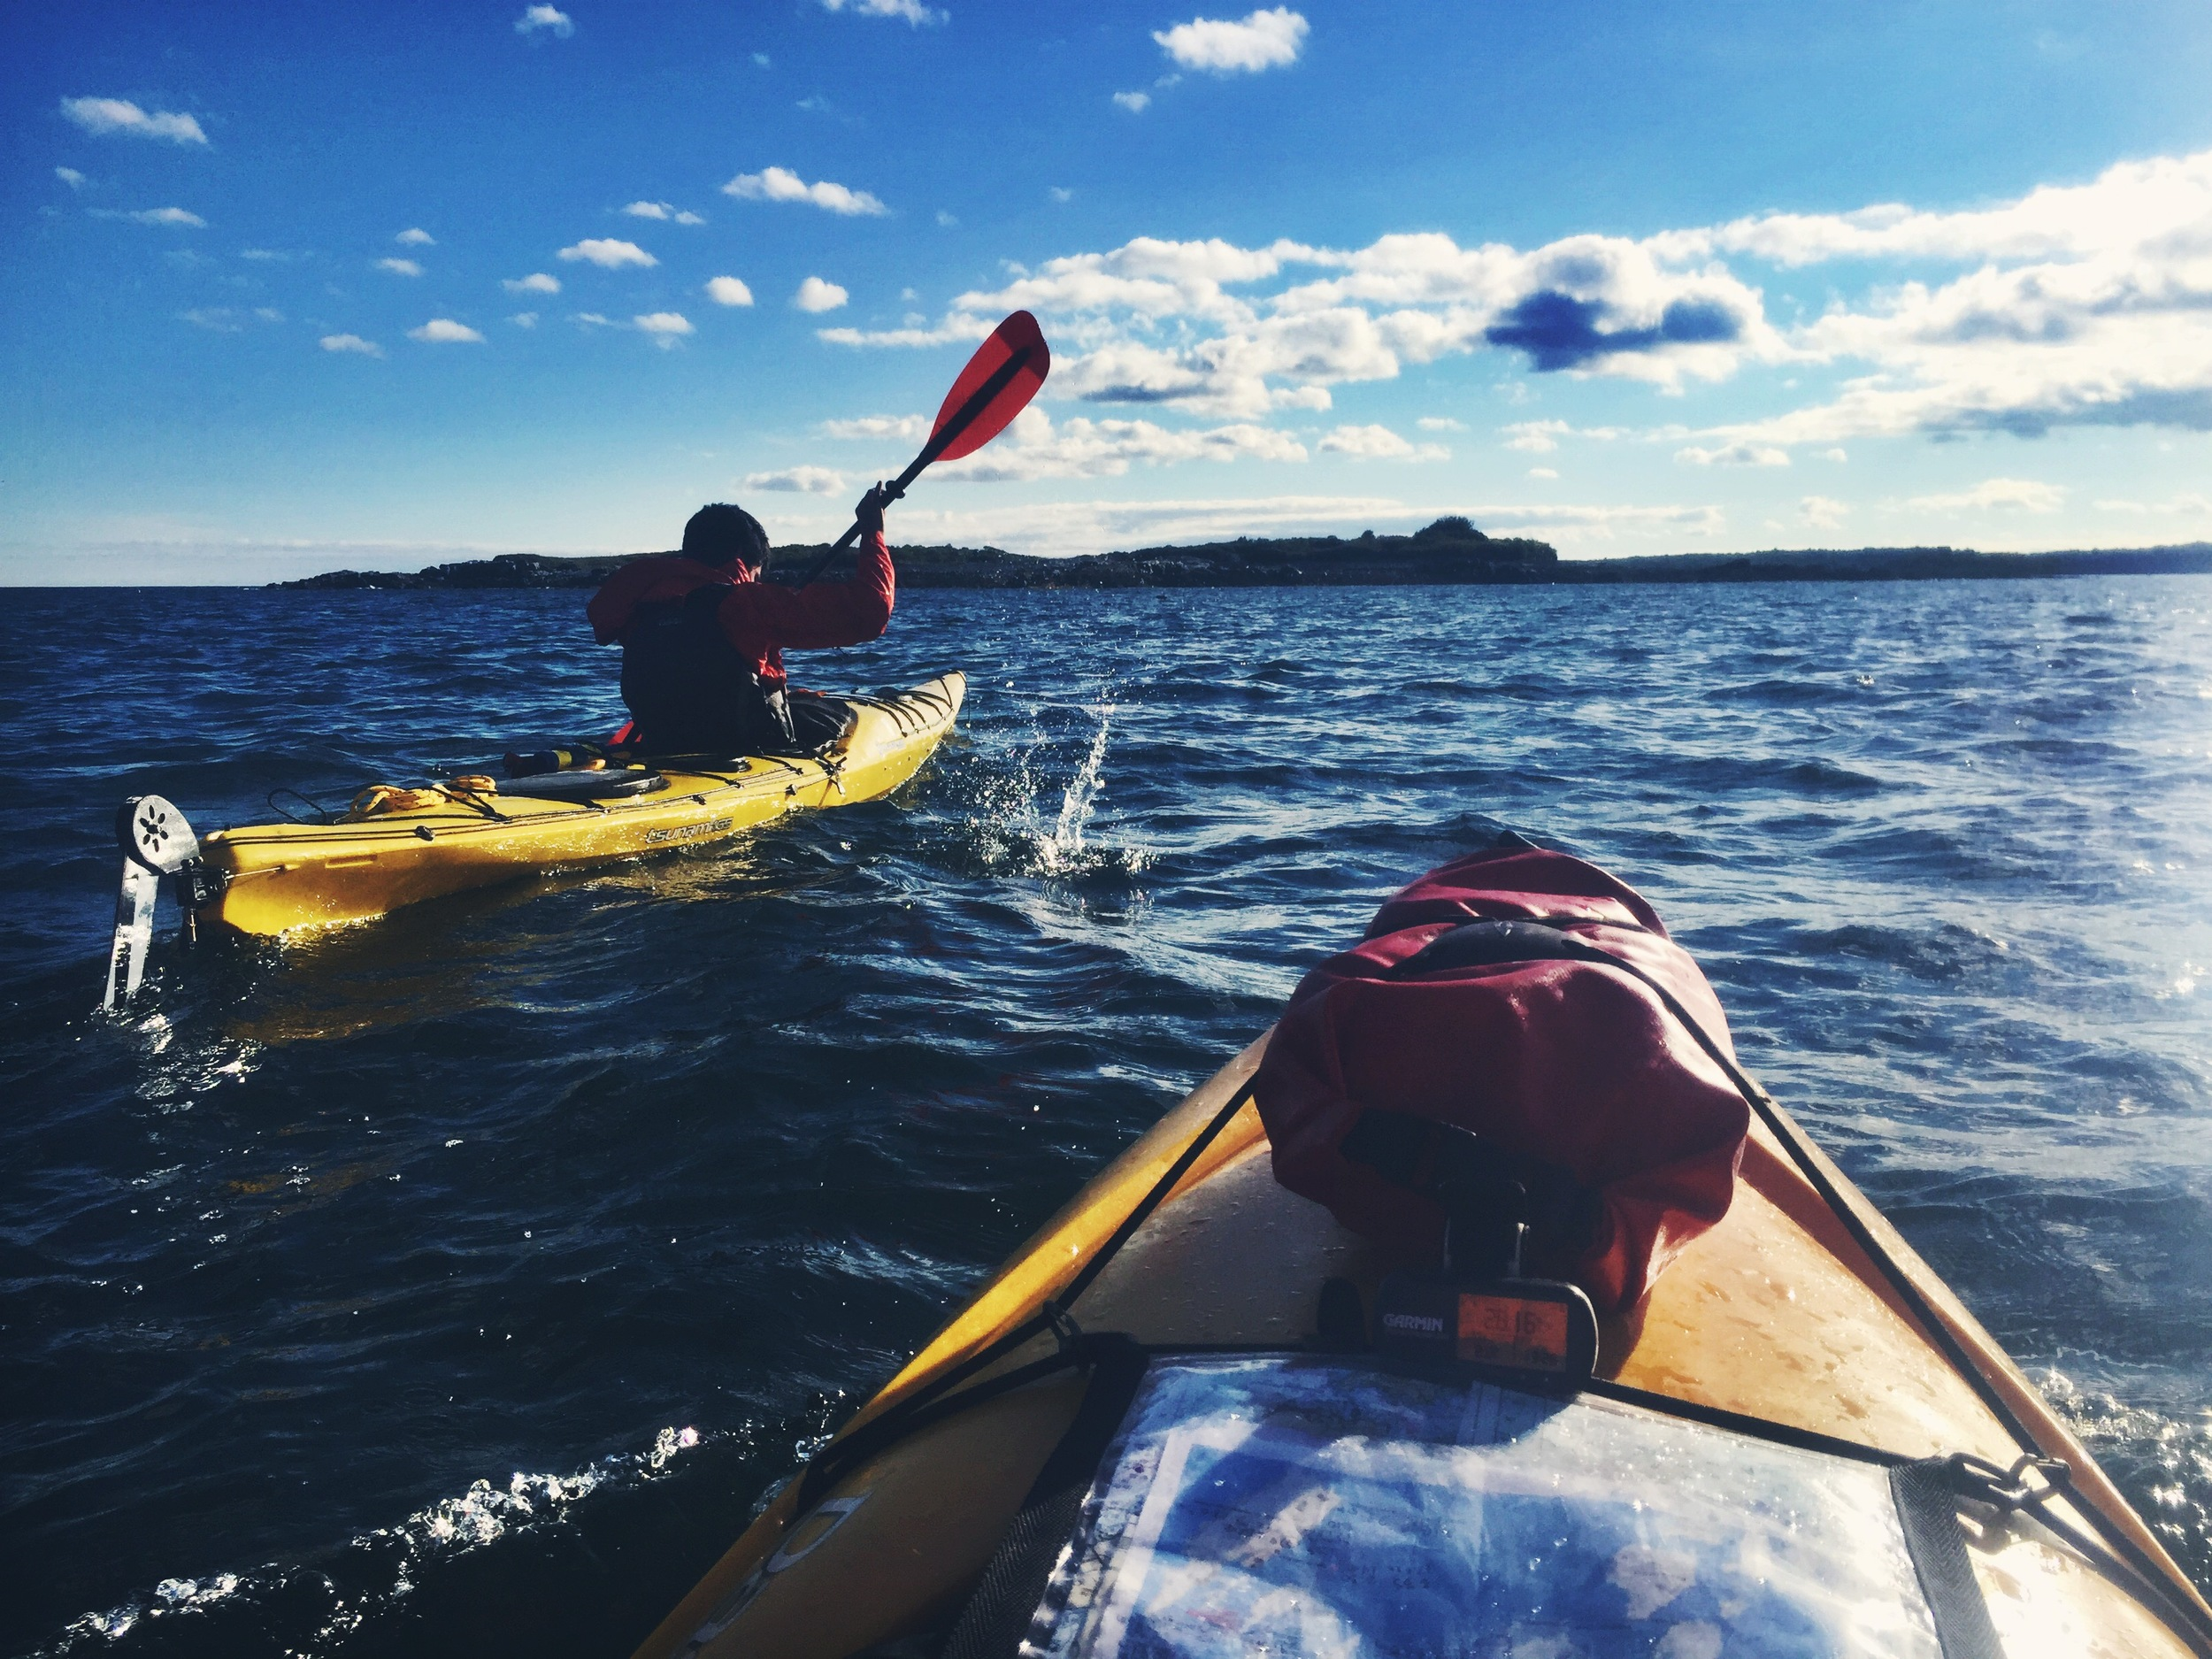 Zig-zagging island to island in Casco Bay